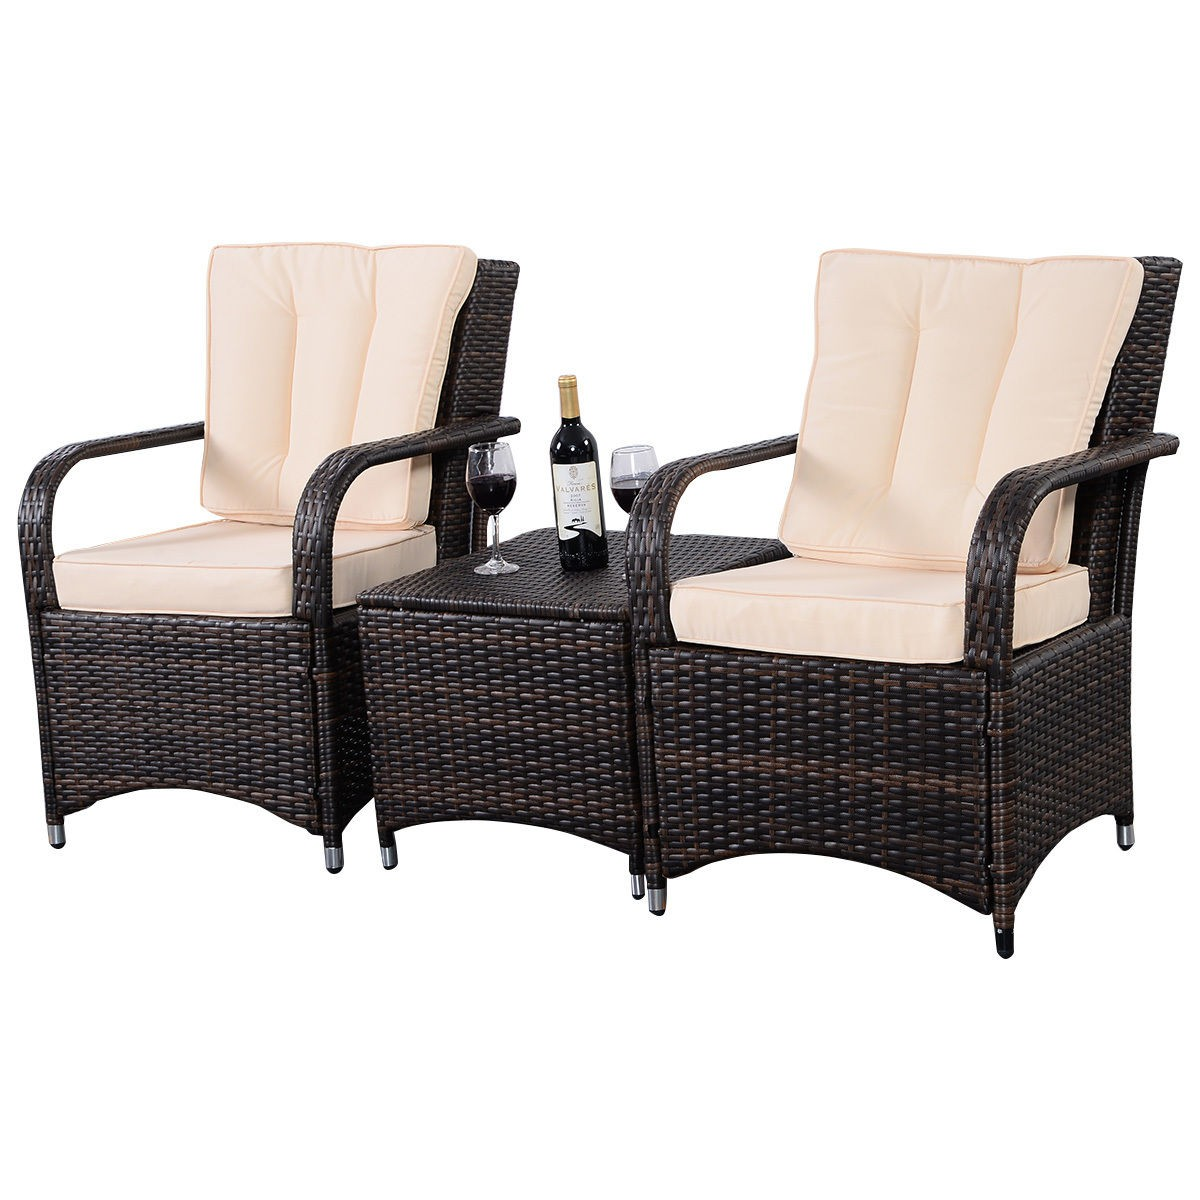 Rattan Outdoor Chairs 3 Qualited Patio Pe Rattan Wicker Furniture Set Outdoor